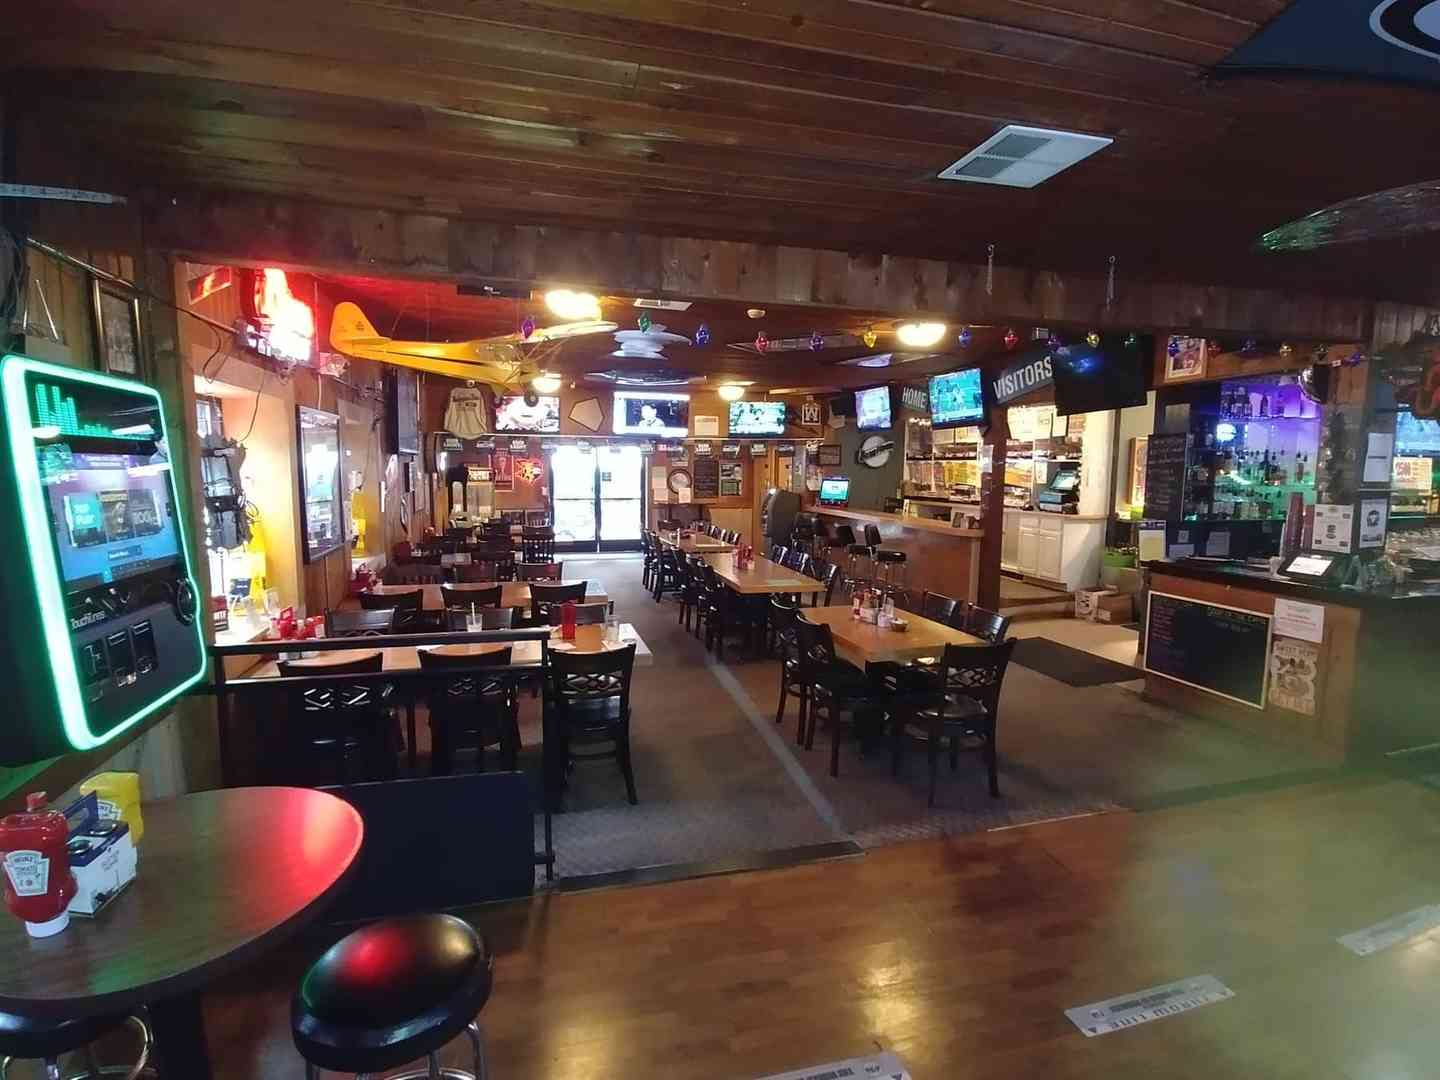 WELCOME TO THE HIDEAWAY SPORTS PUB & EATERY IN SPANAWAY, WA